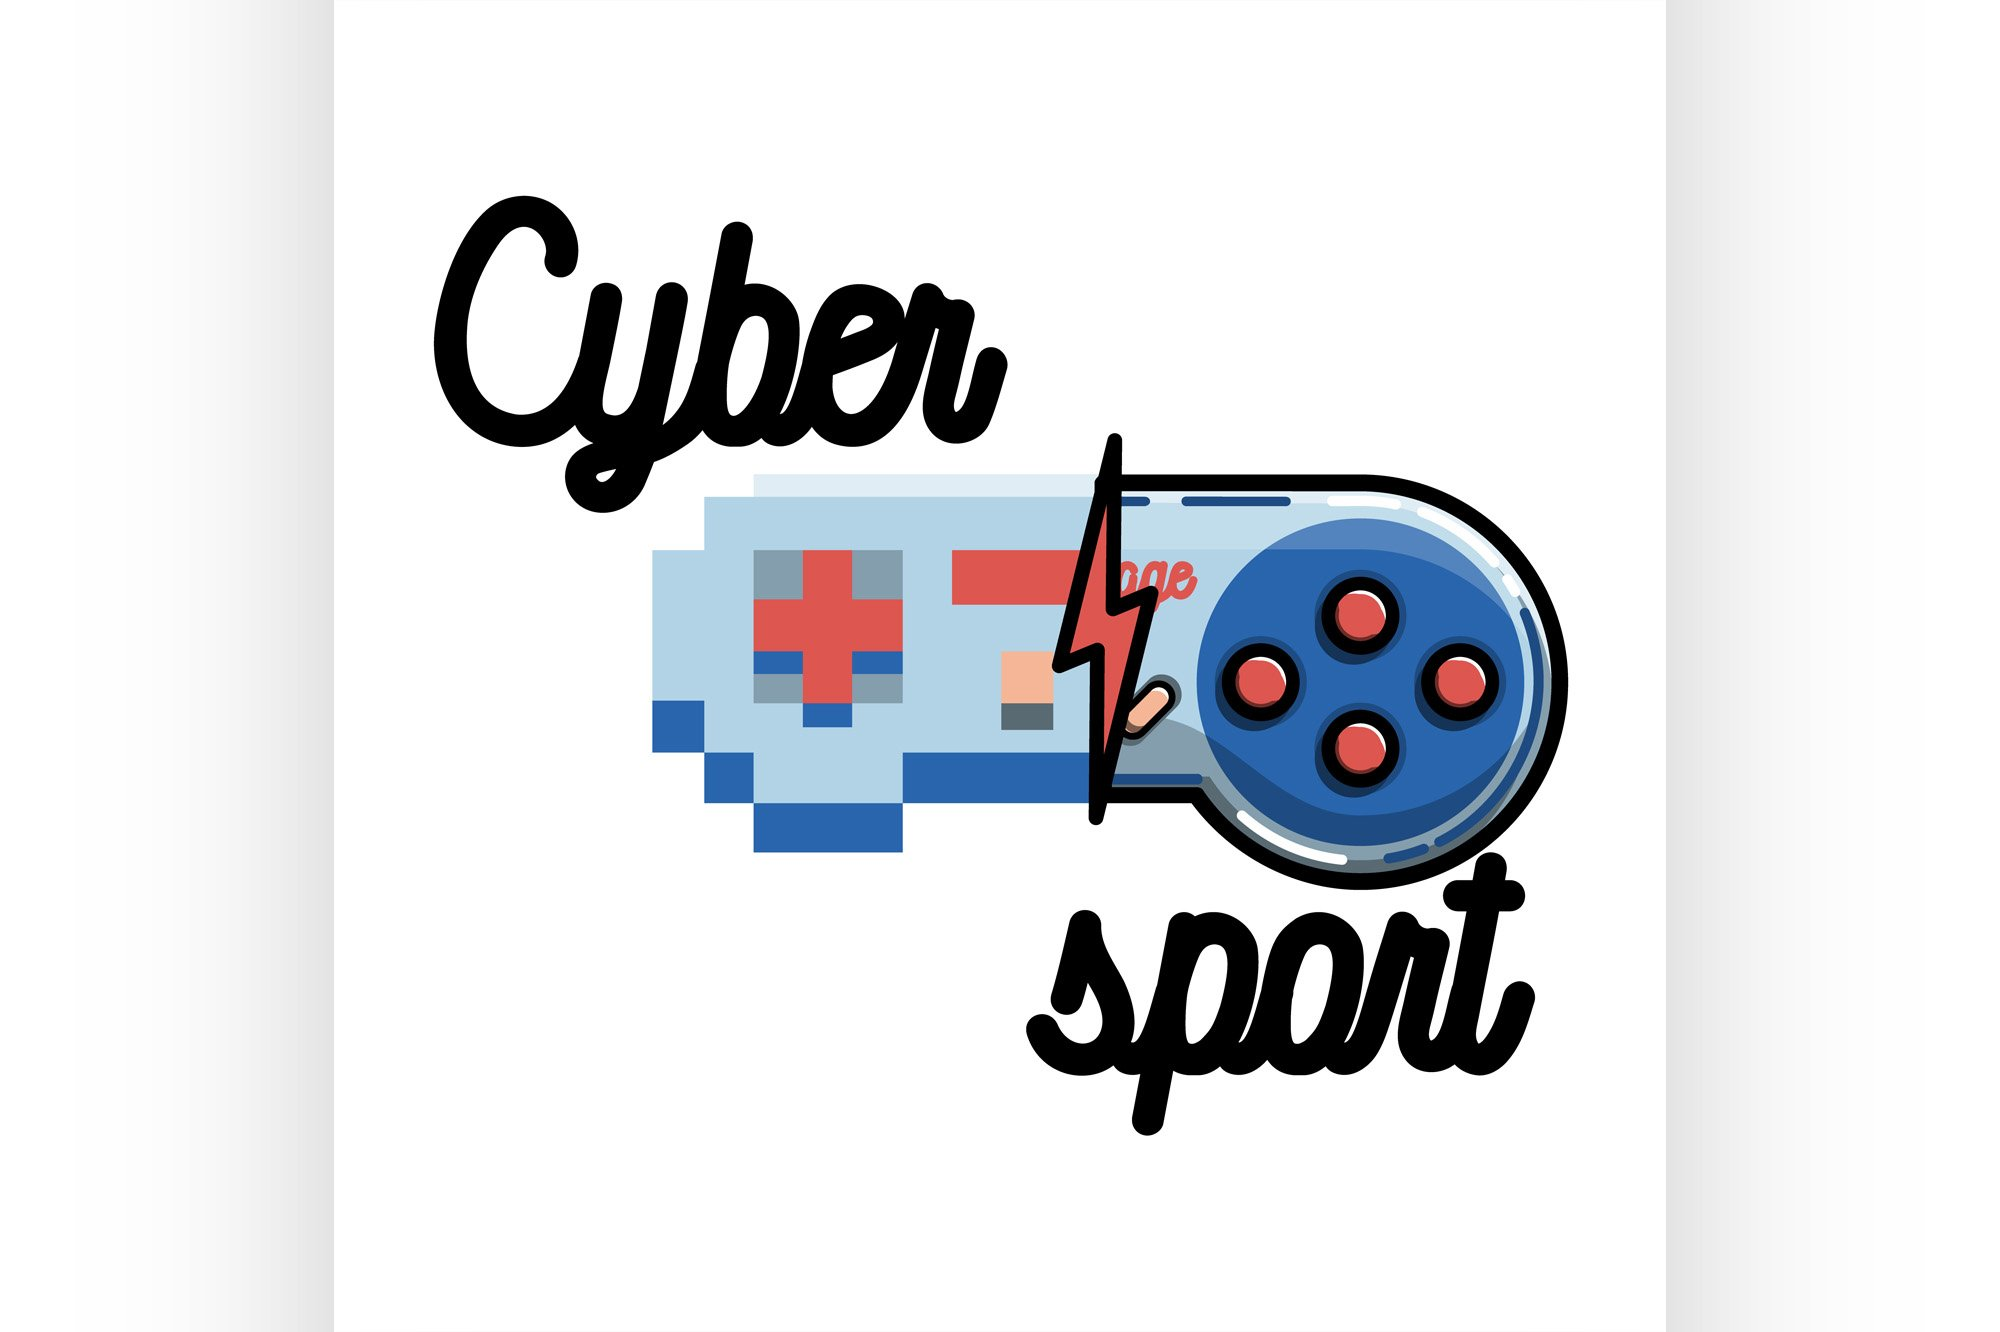 Color vintage cyber sport banner example image 1